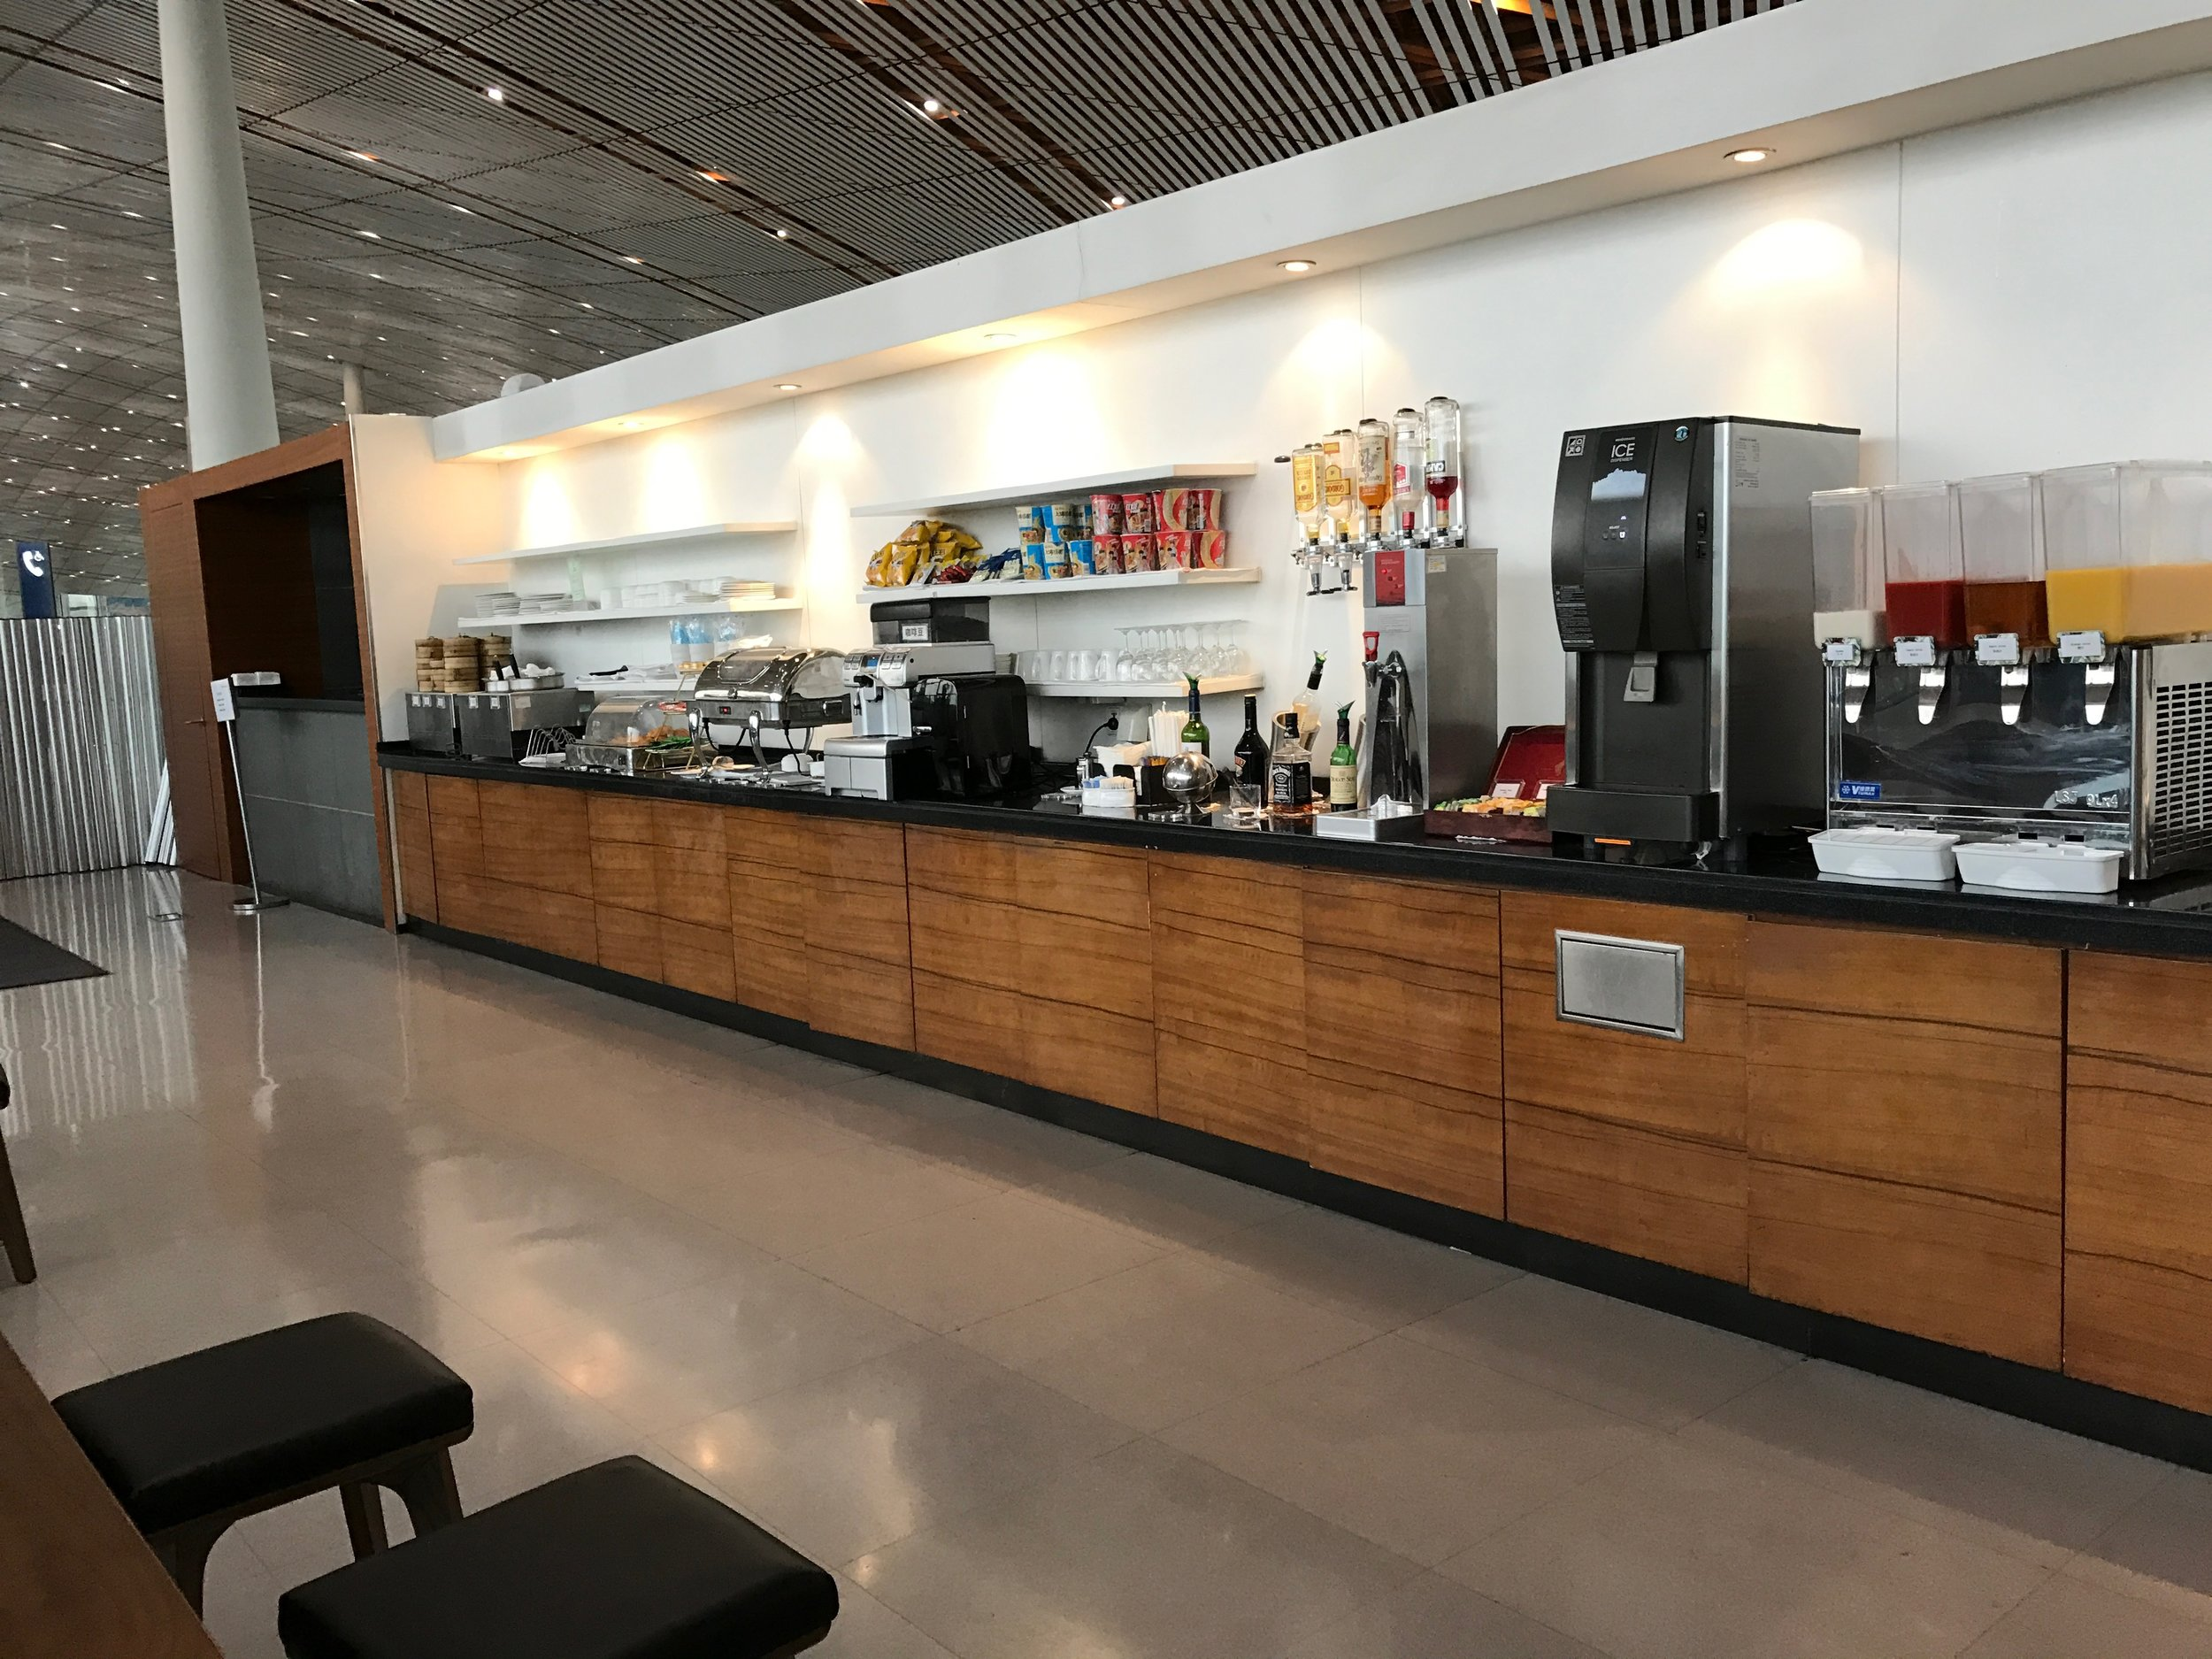 Main food and drink selection at Cathay Pacific Lounge, Beijing Airport (PEK) T3E